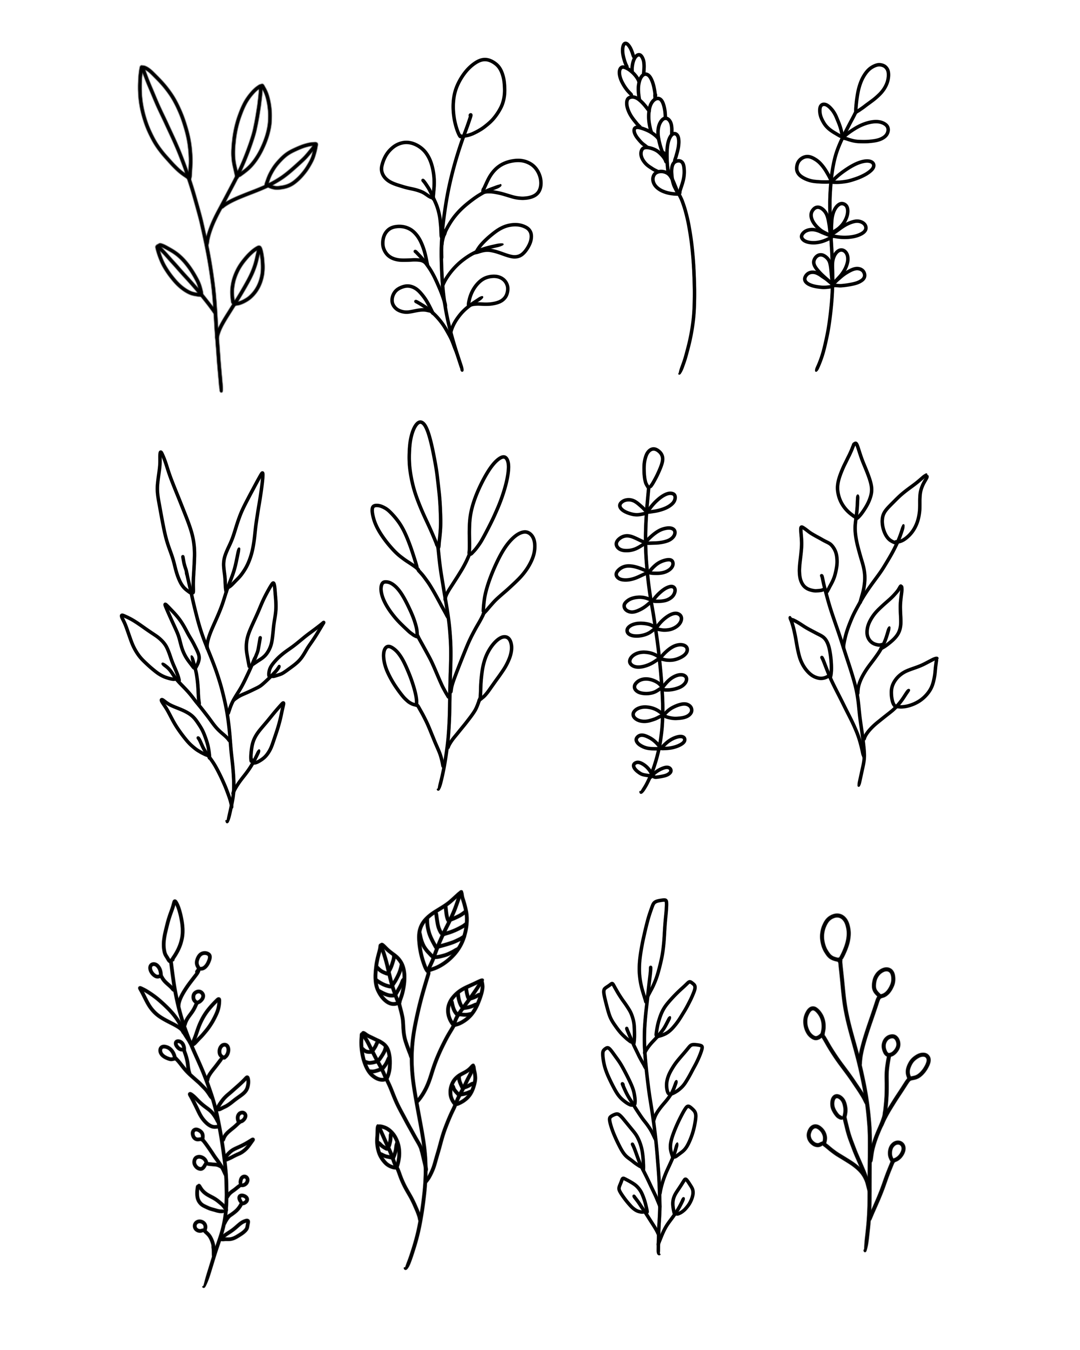 Flower Handraw Outline Flower Handraw Flower Black Png And Vector With Transparent Background For Free Download Flower Outline Flower Drawing Realistic Flower Drawing